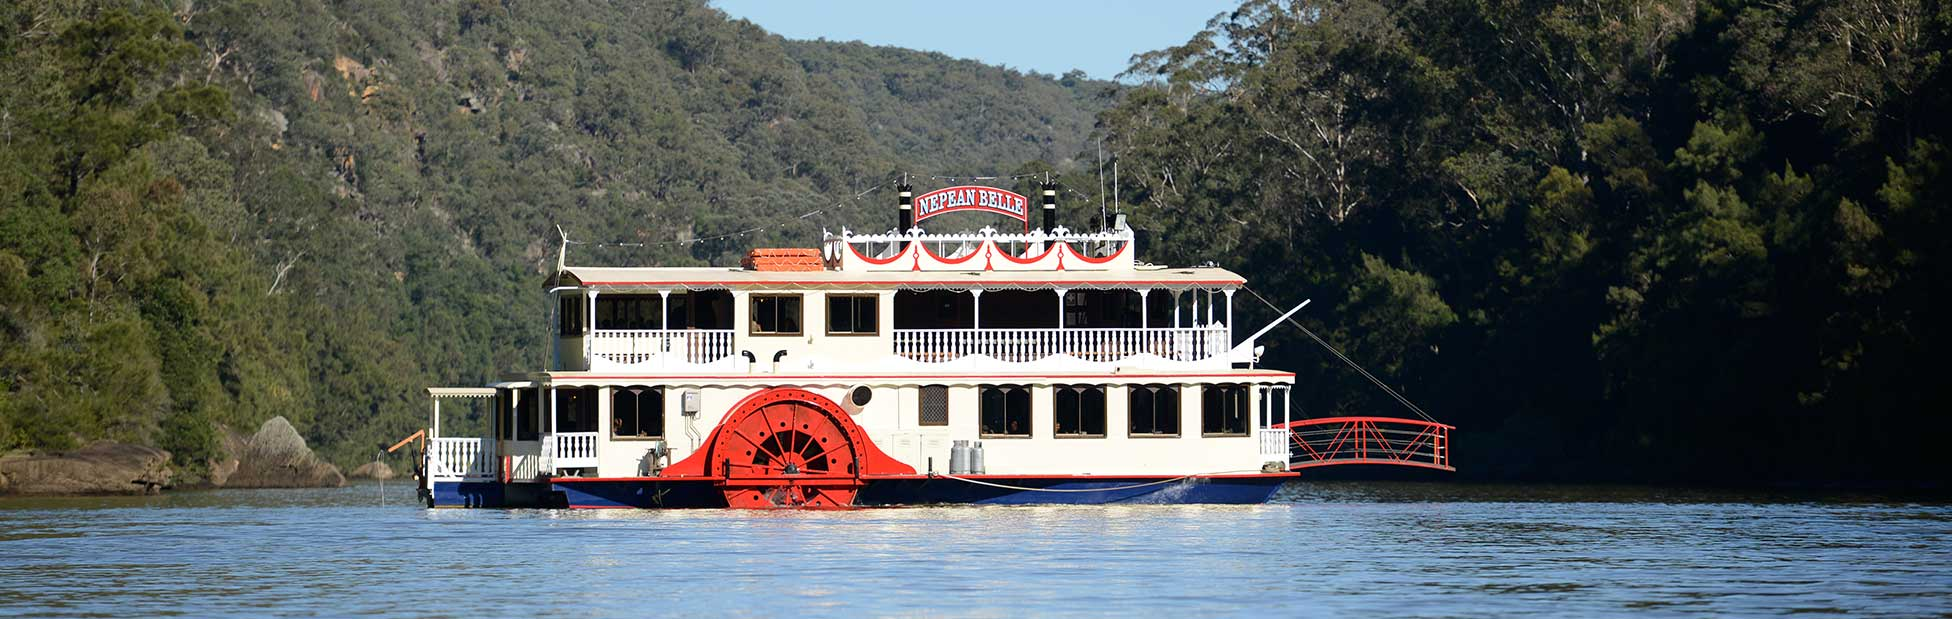 Nepean Belle paddlewheeler side on in Nepean River